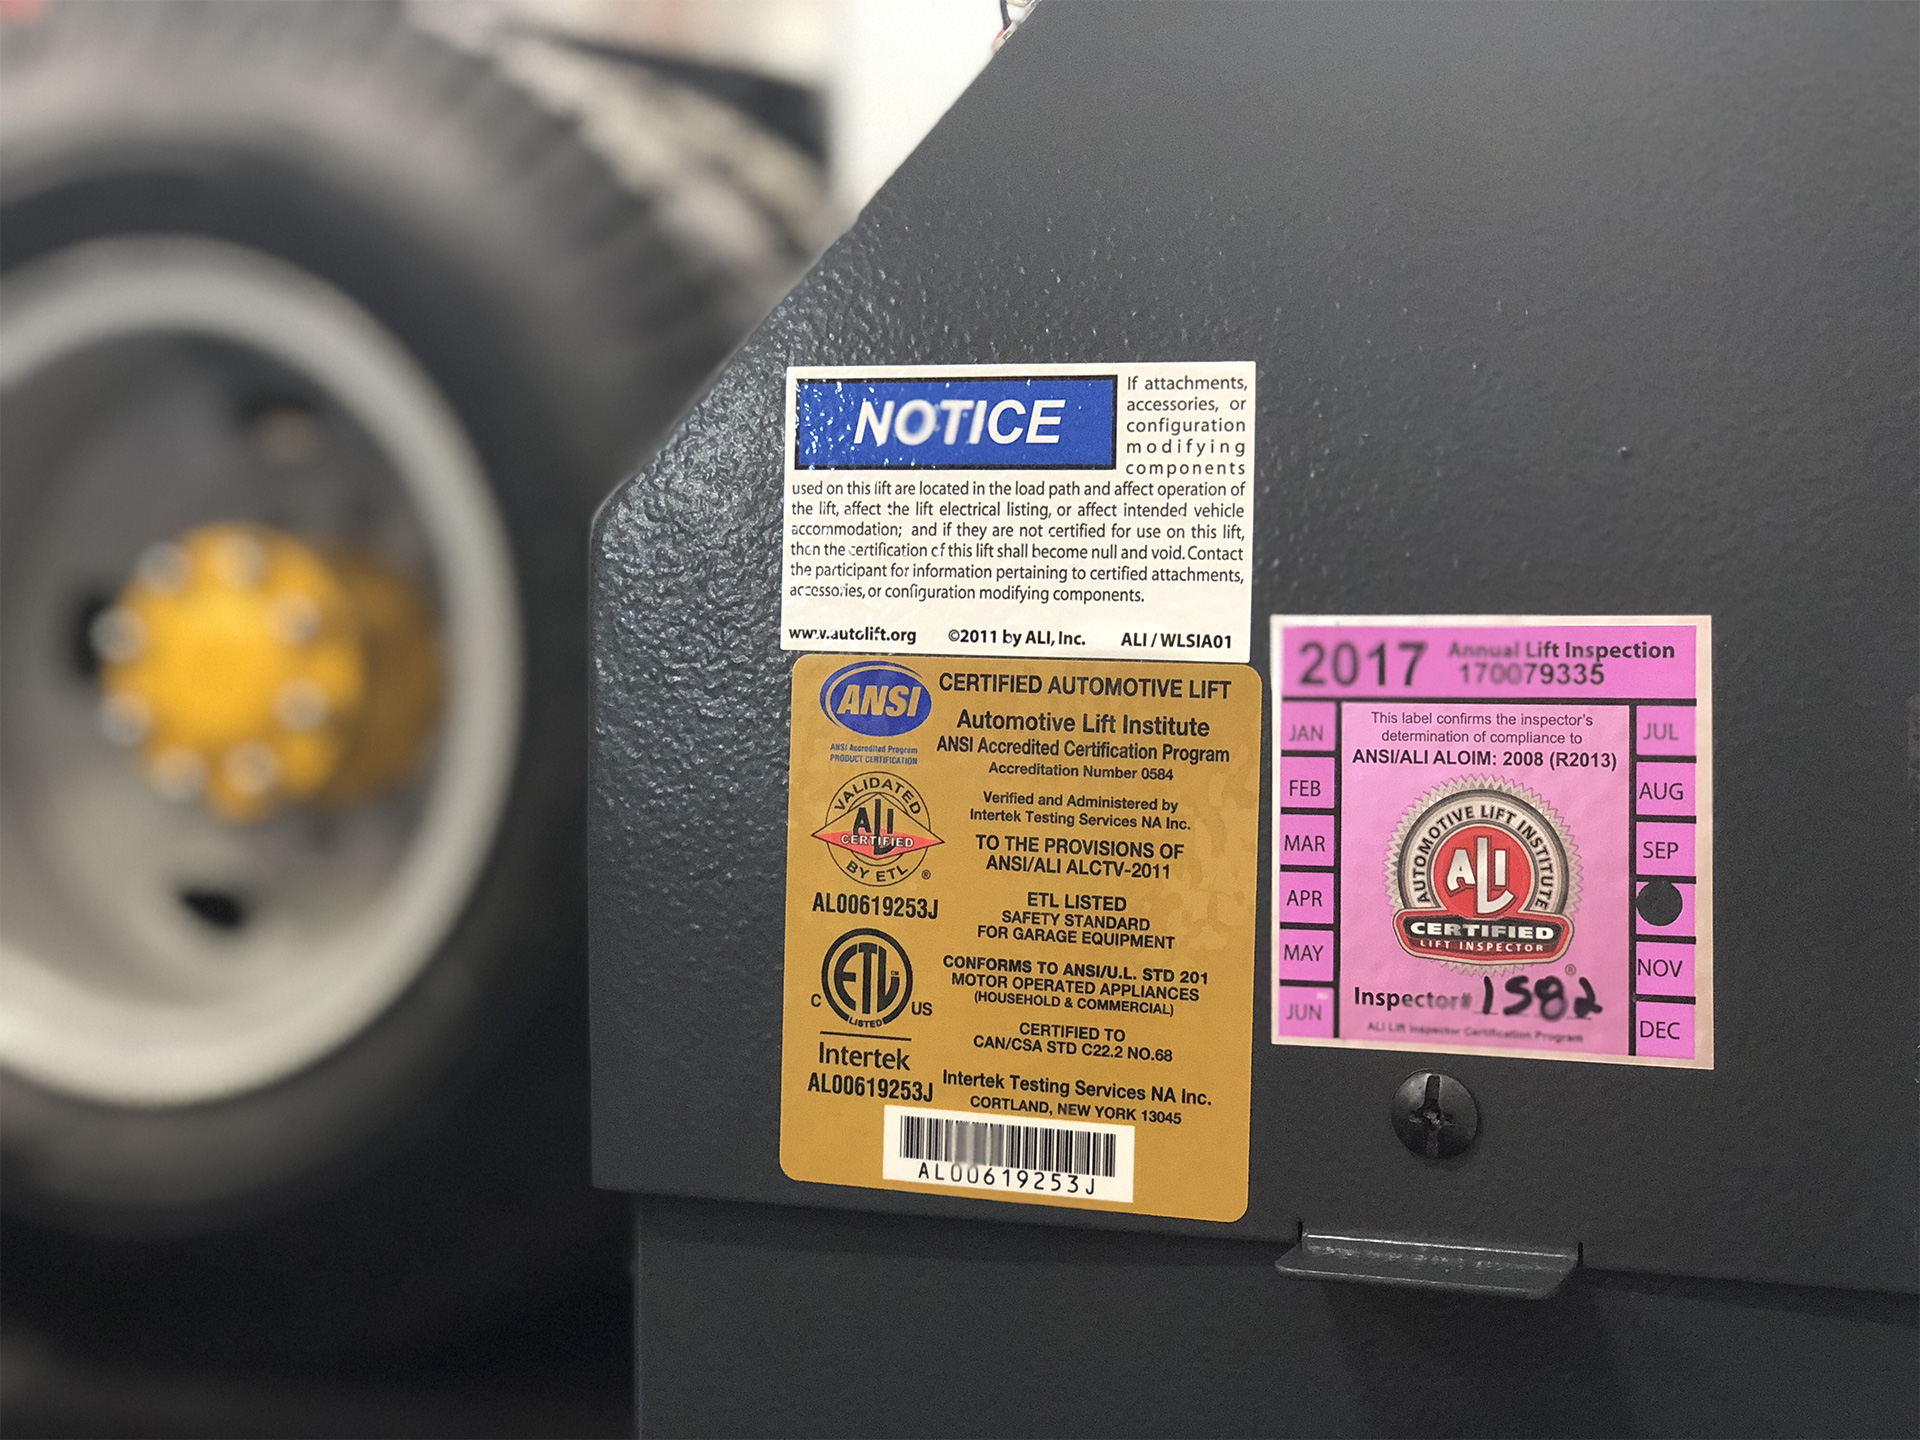 ALI certified Lift inspected labels